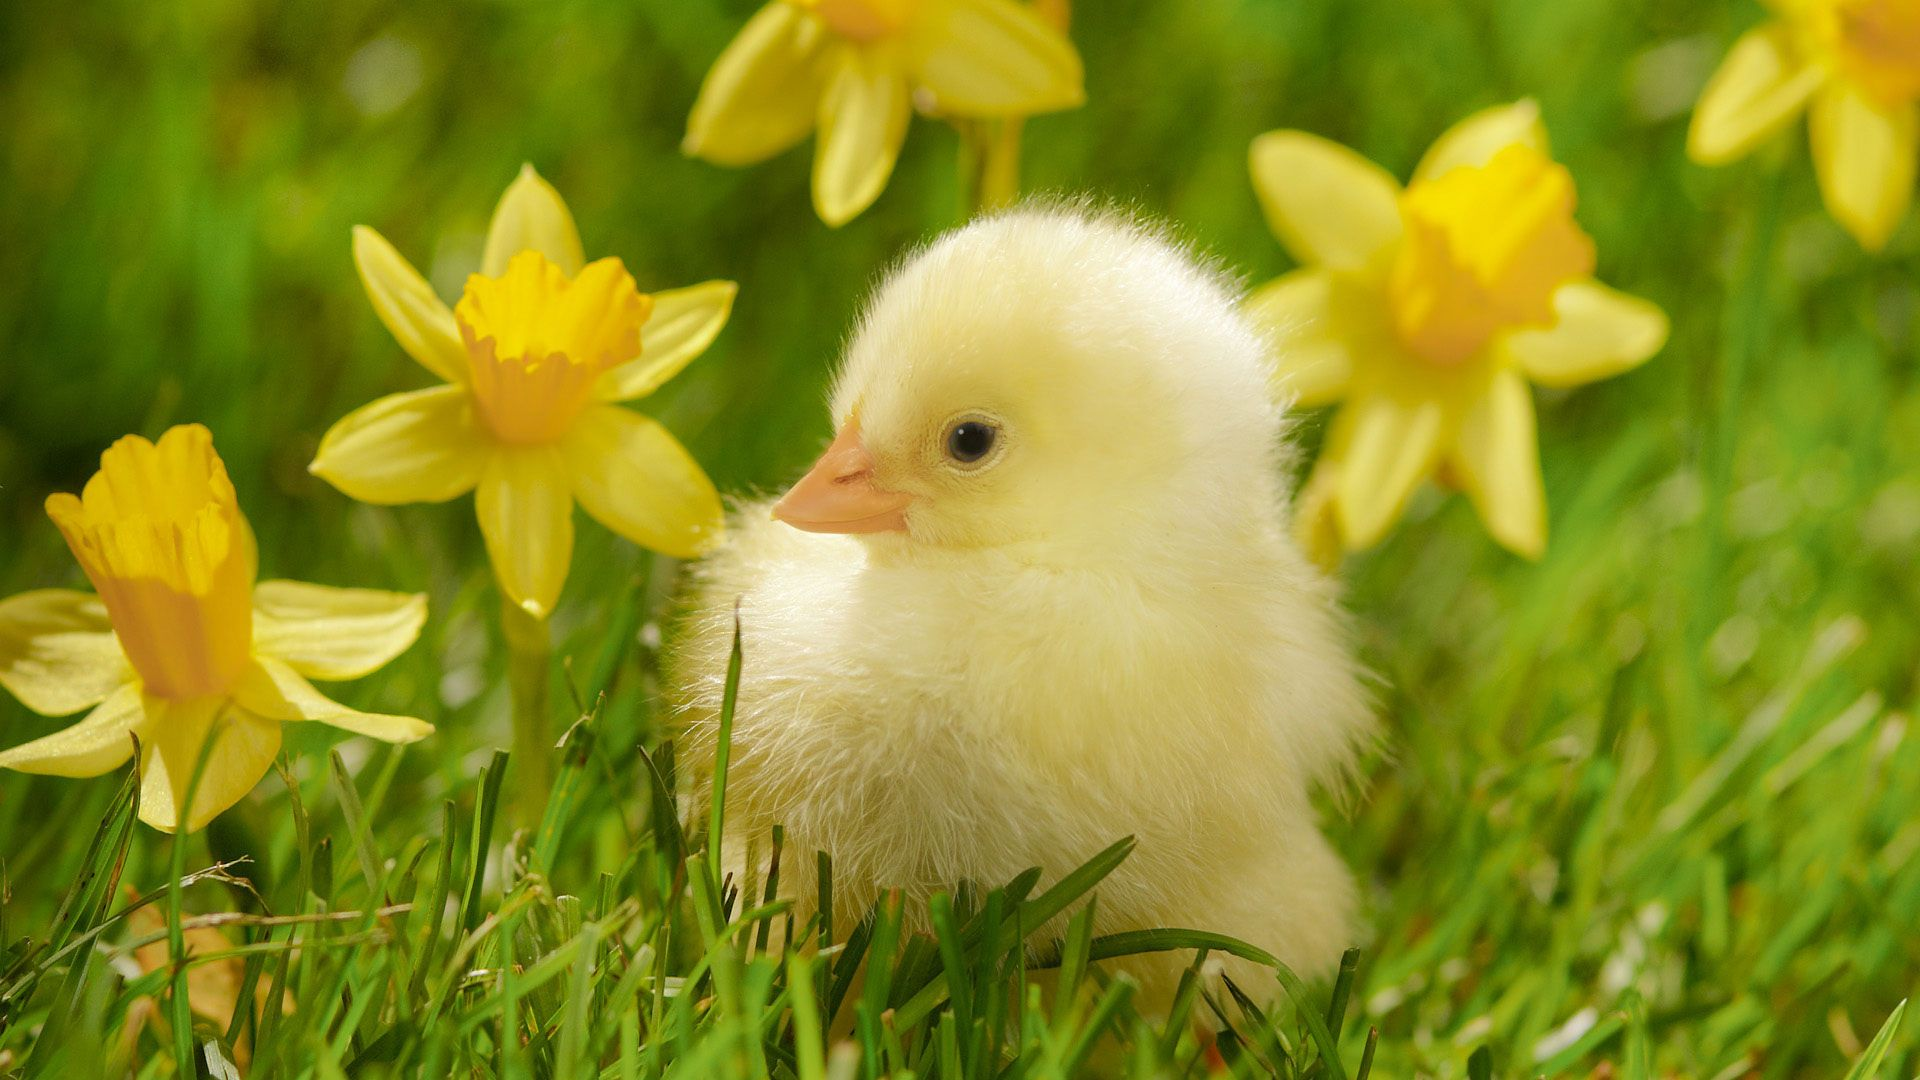 Yellow Chicken Wallpaper Hd Duck Ducklings Baby Ducks